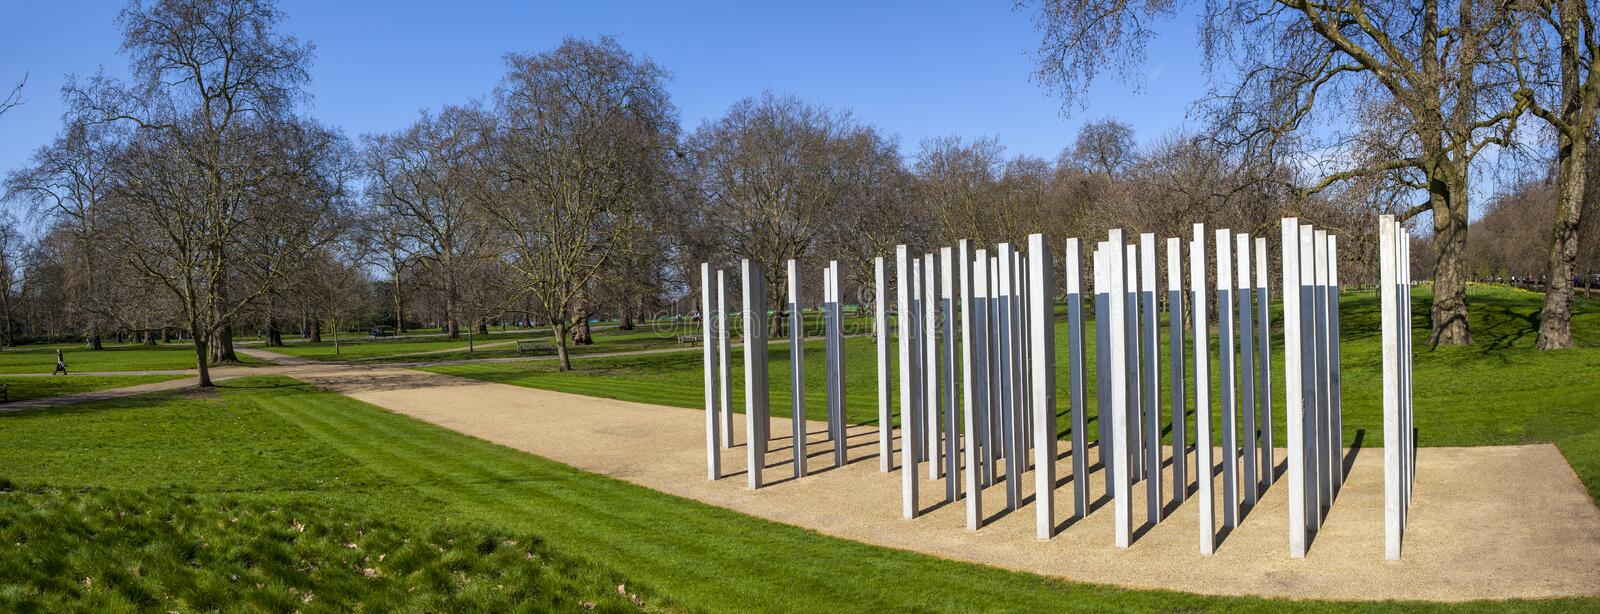 7th July Memorial in Hyde Park. A panoramic view of the Memorial in Hyde Park in memory of the victims of the 7th July London Bombings royalty free stock photography